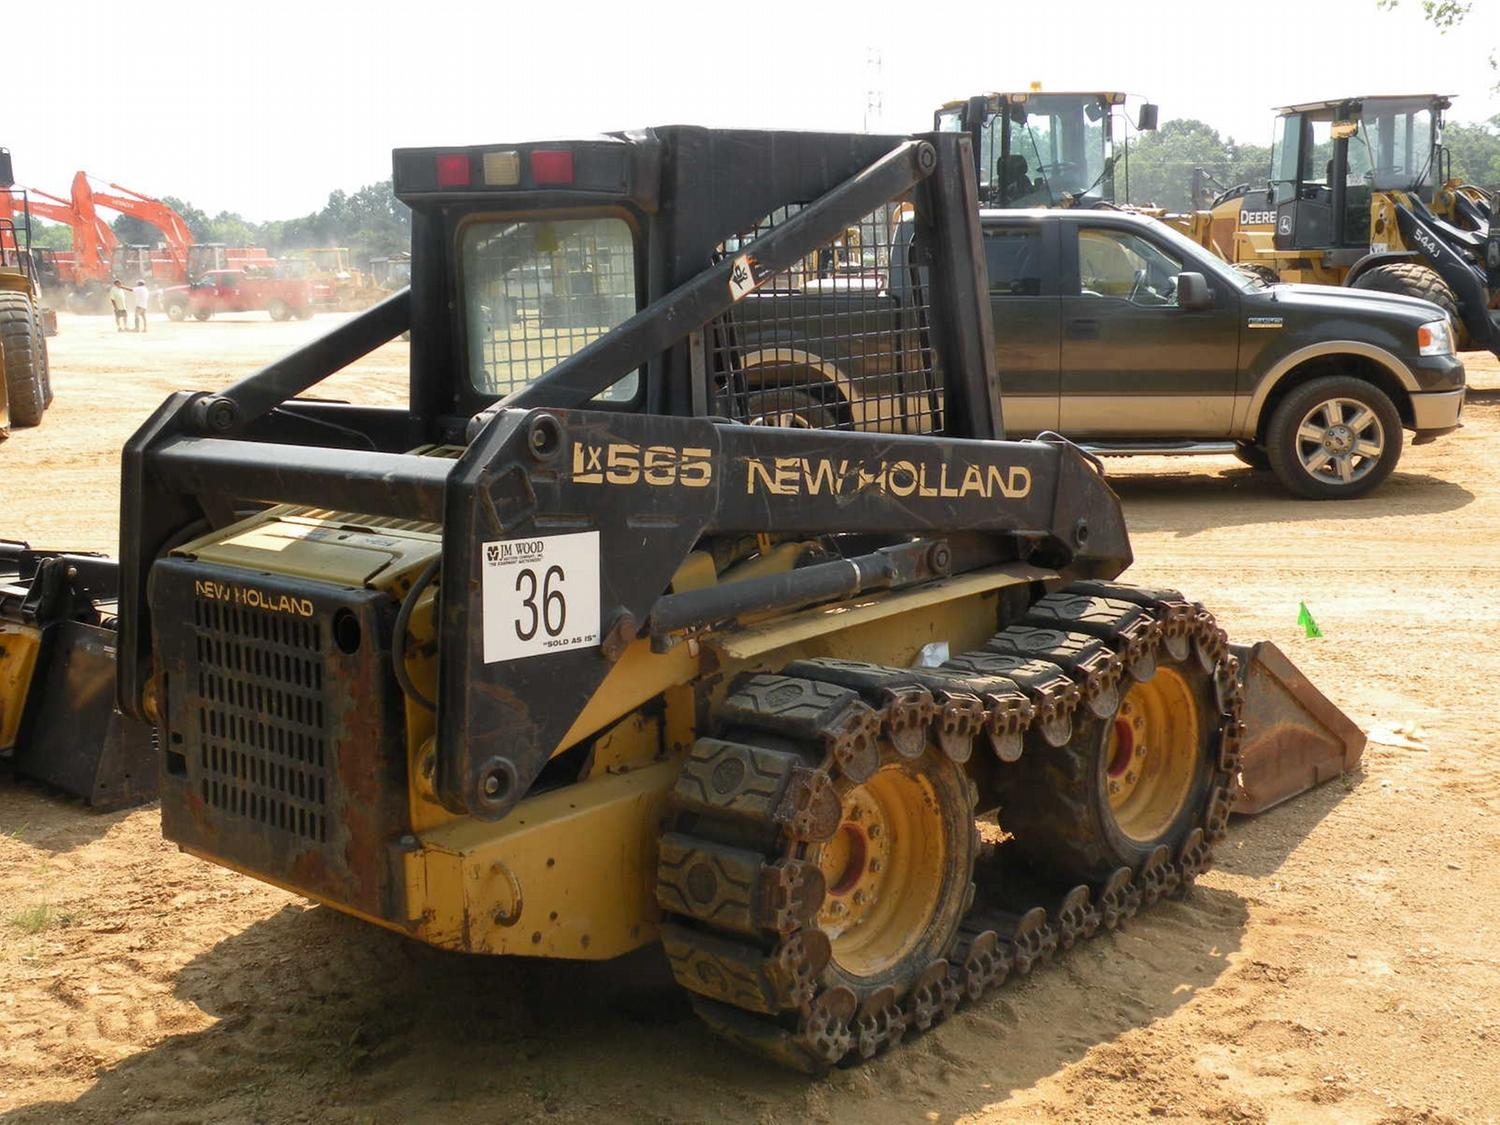 NEW HOLLAND LX565 SKID STEER LOADER